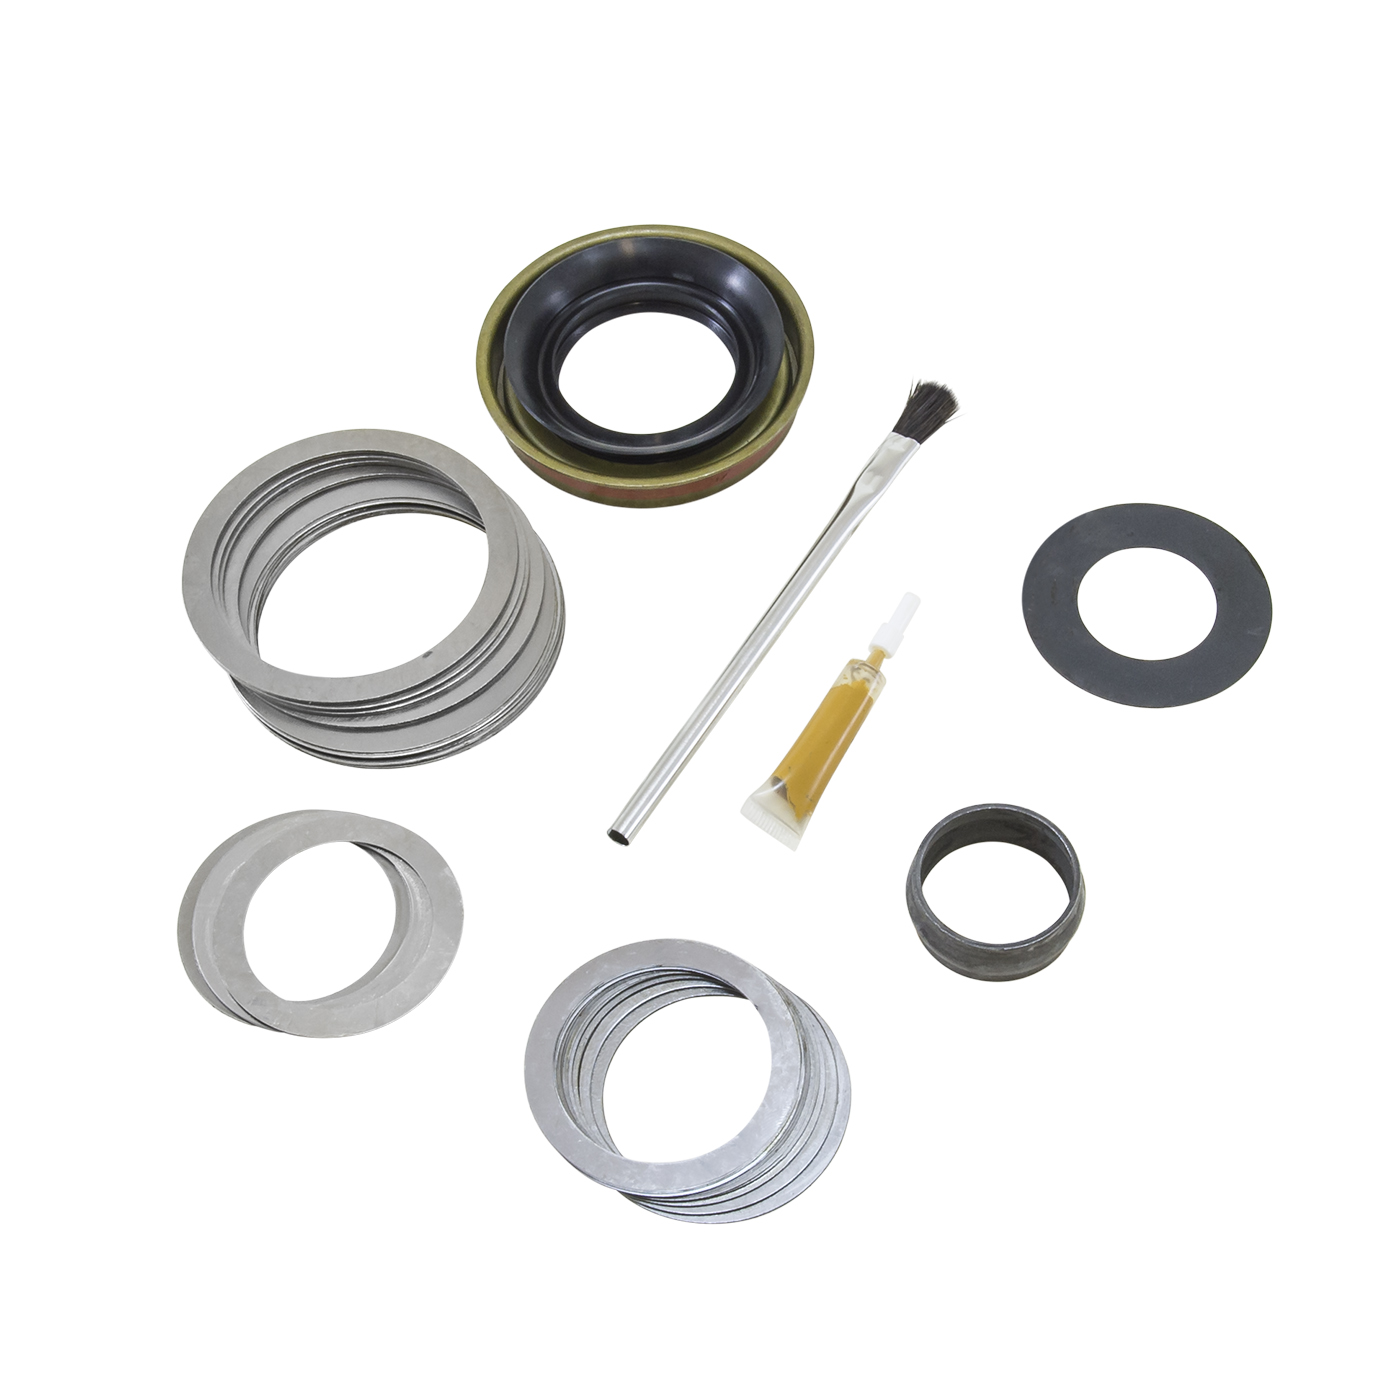 MK D44-JK-STD - Yukon Minor install kit for Dana 44 differential for new JK, non-Rubicon